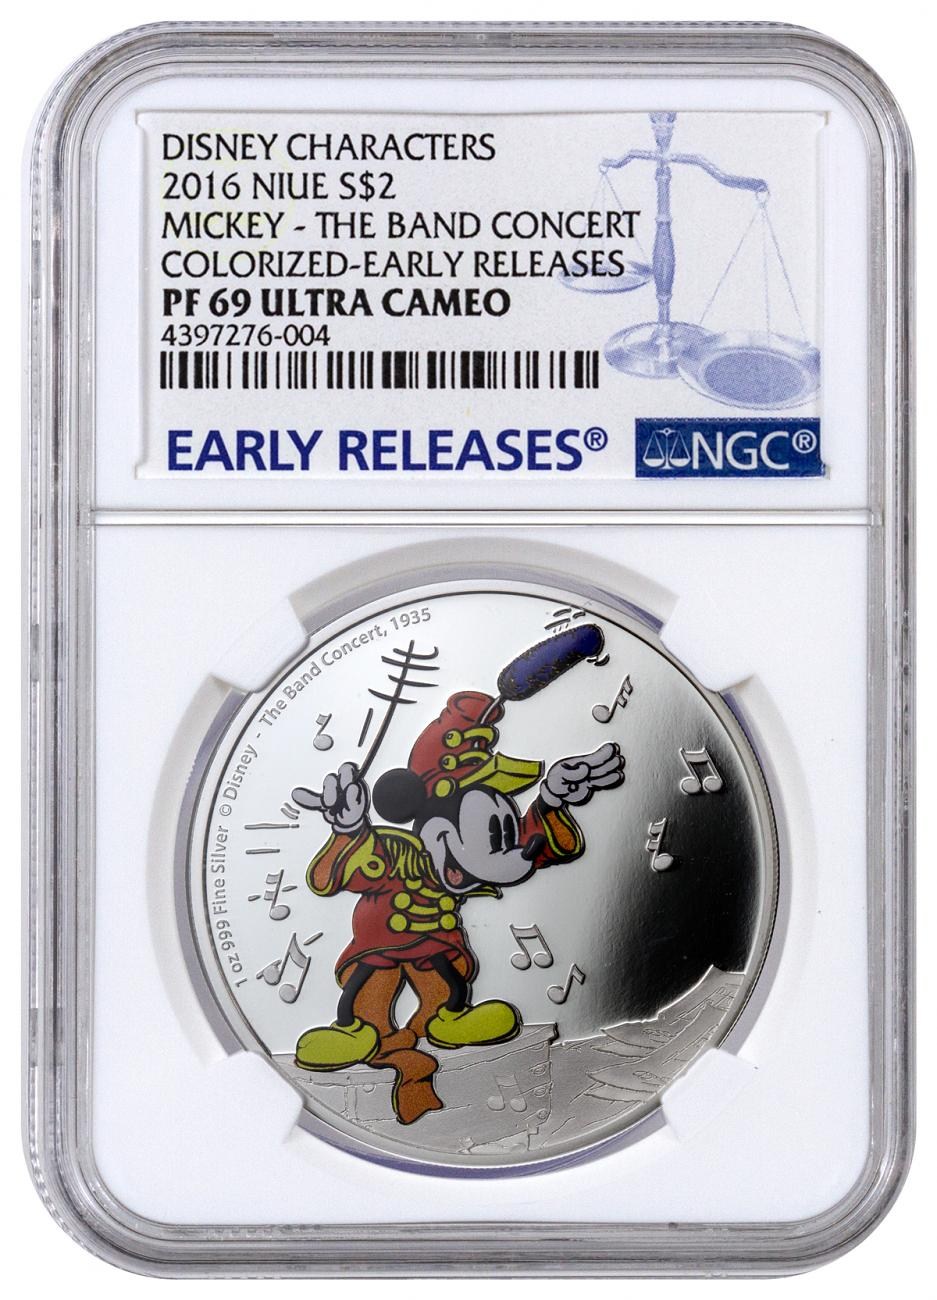 2016 Niue $2 1 oz. Colorized Proof Silver Disney - Mickey the Band Concert - NGC PF69 UC Early Releases